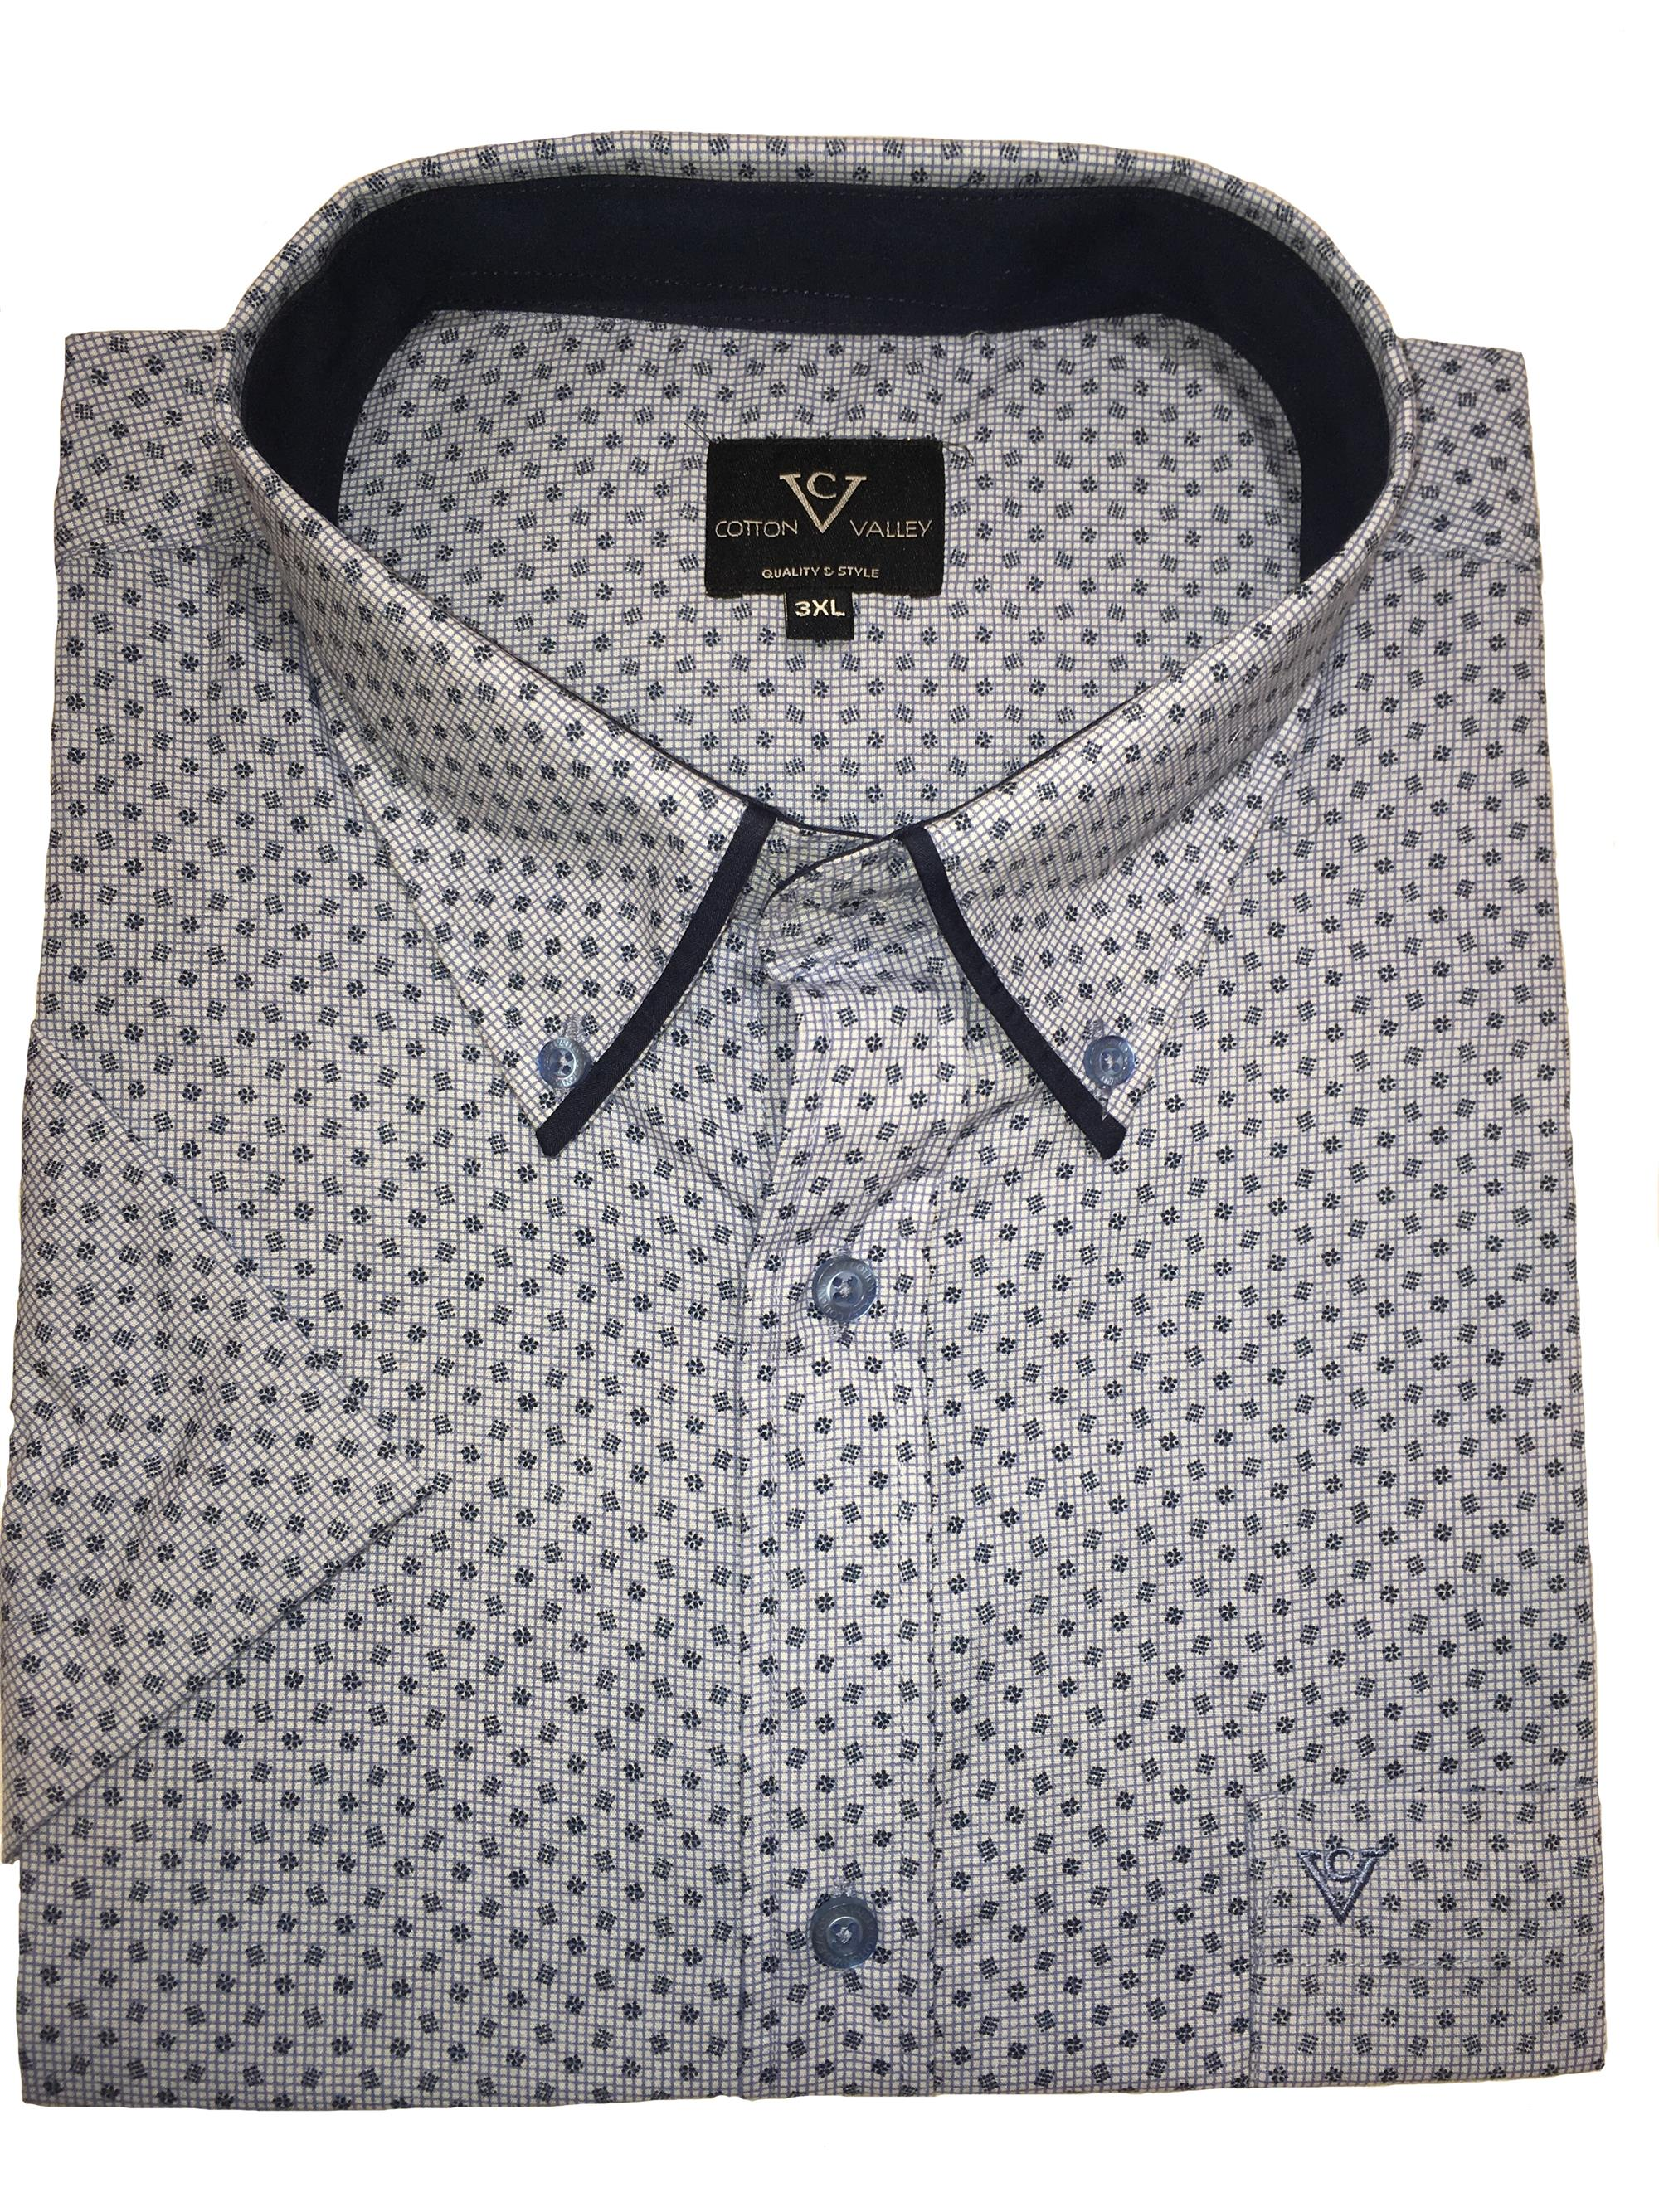 short sleeve patterned shirt (white/blue)